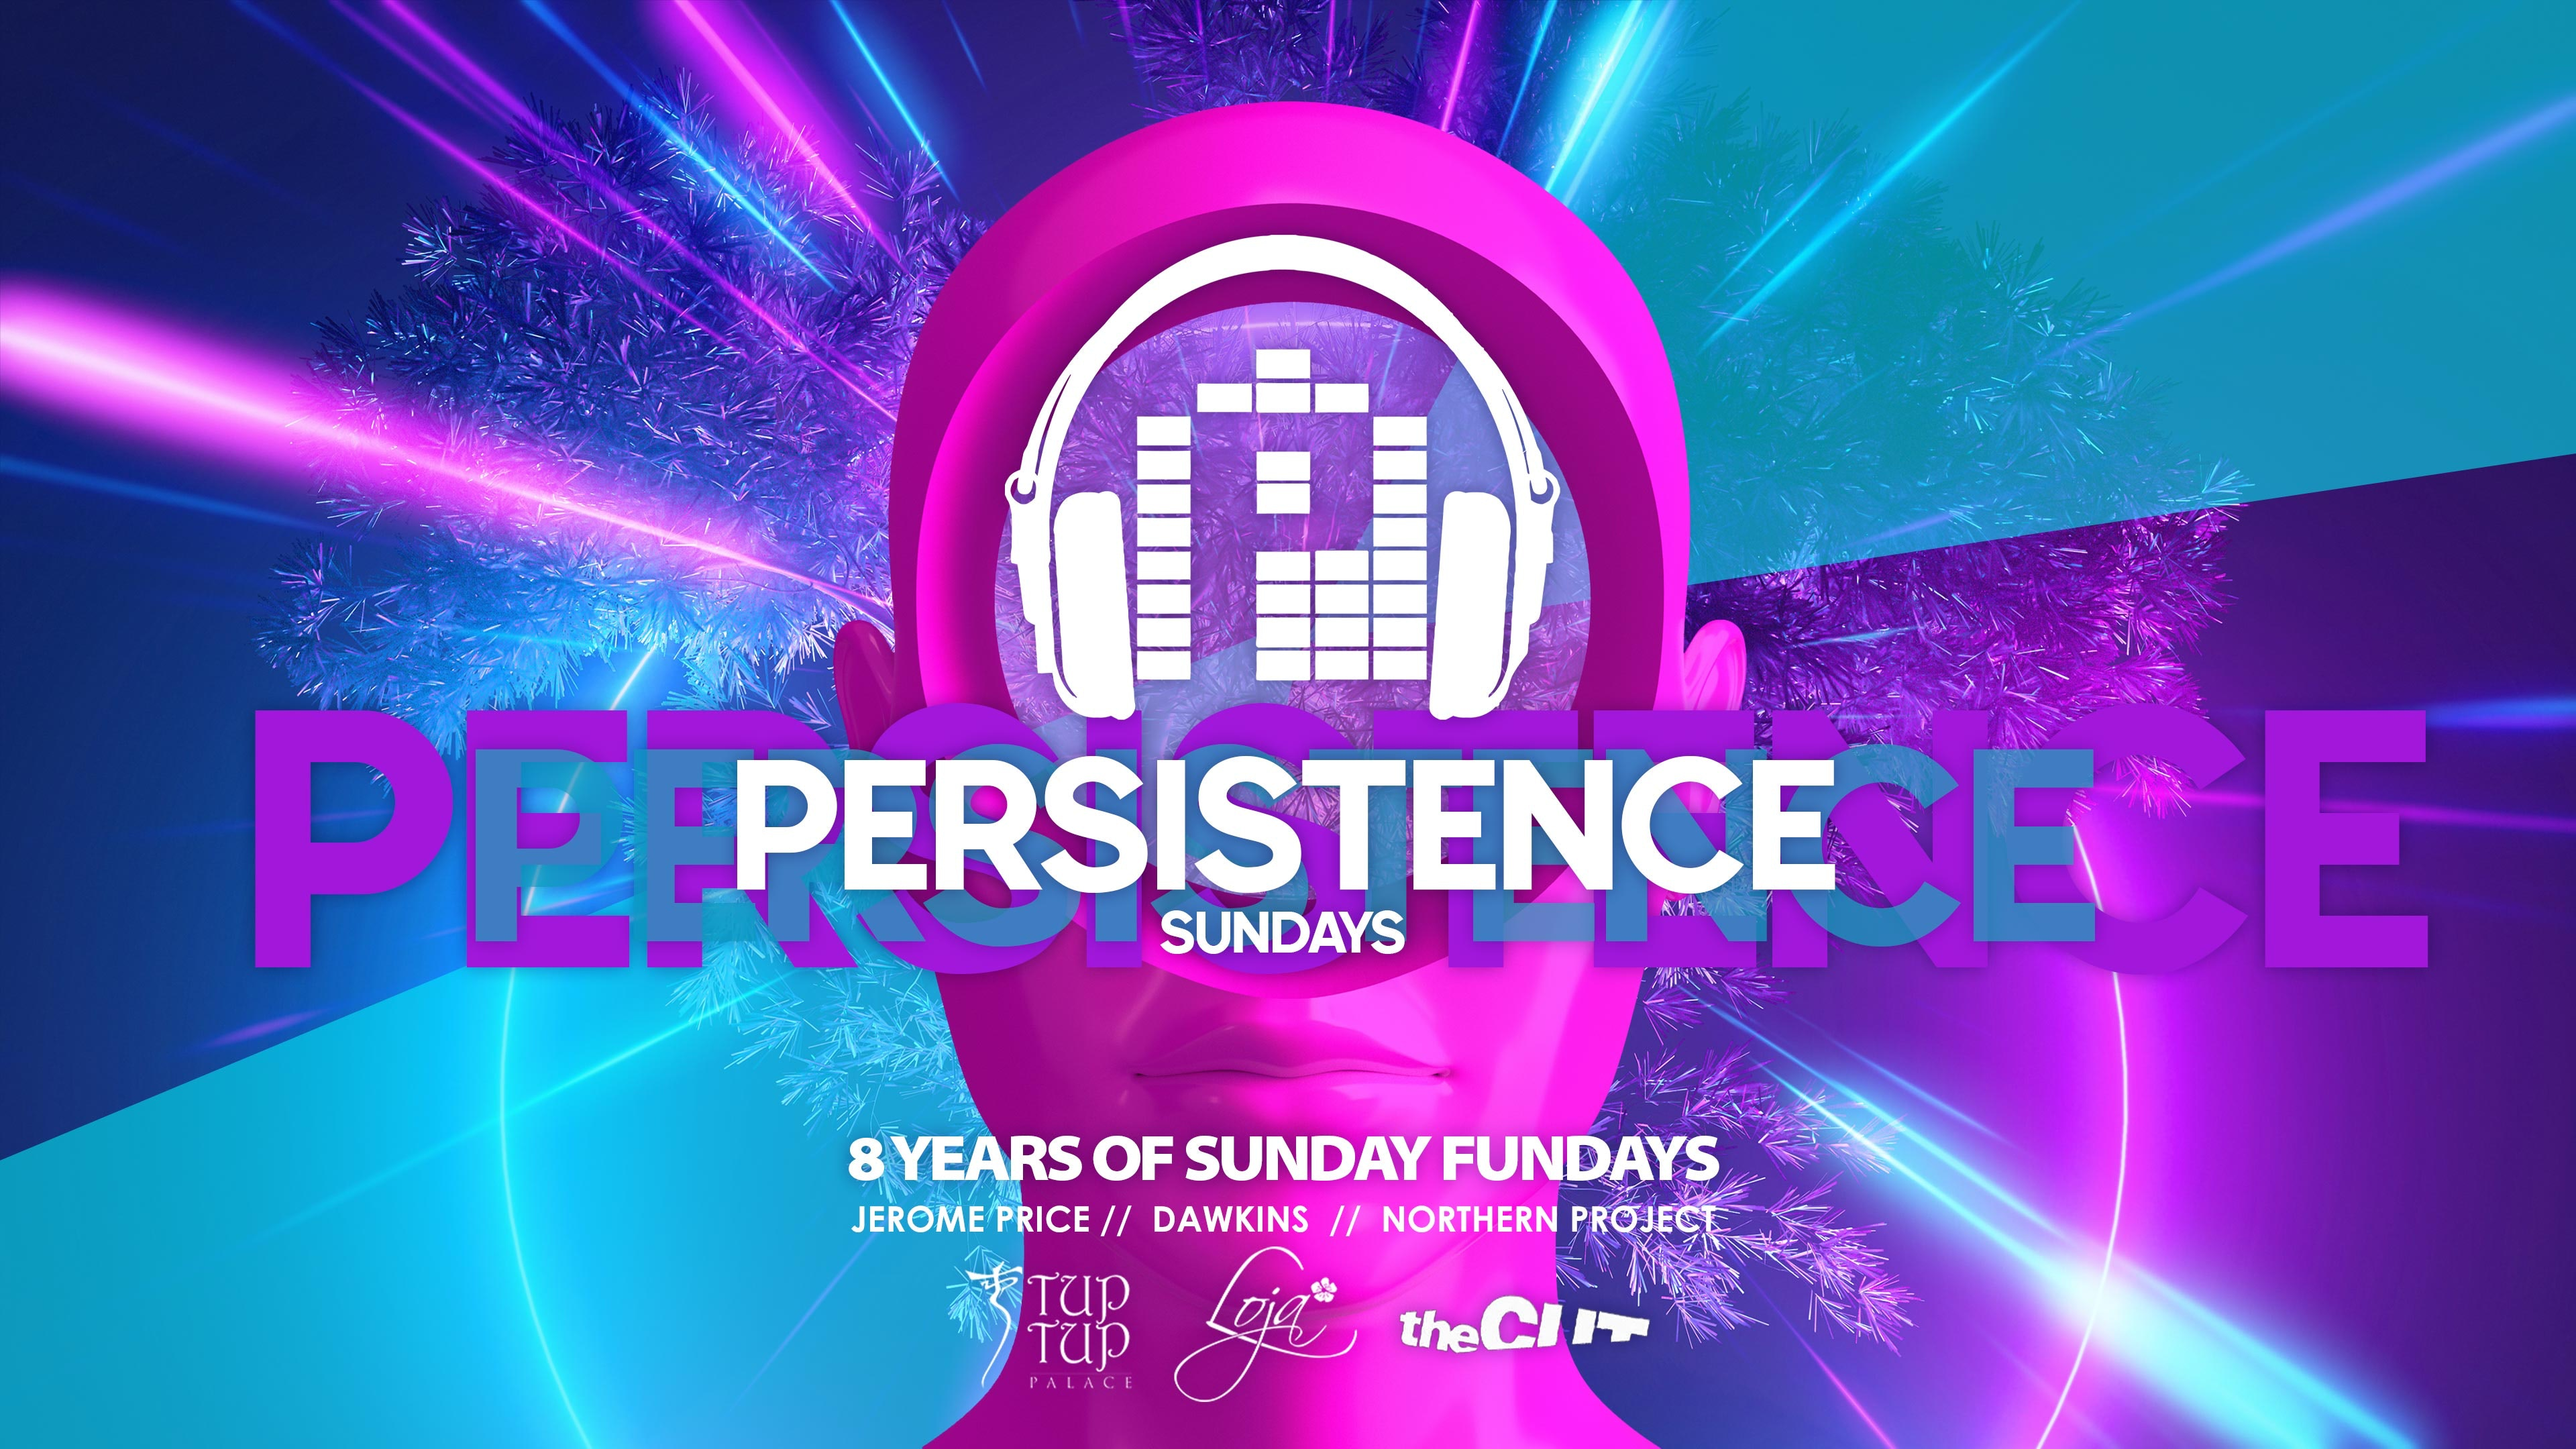 PERSISTENCE   TUP TUP PALACE, THE CUT & LOJA   25th JULY *NEW DATE*